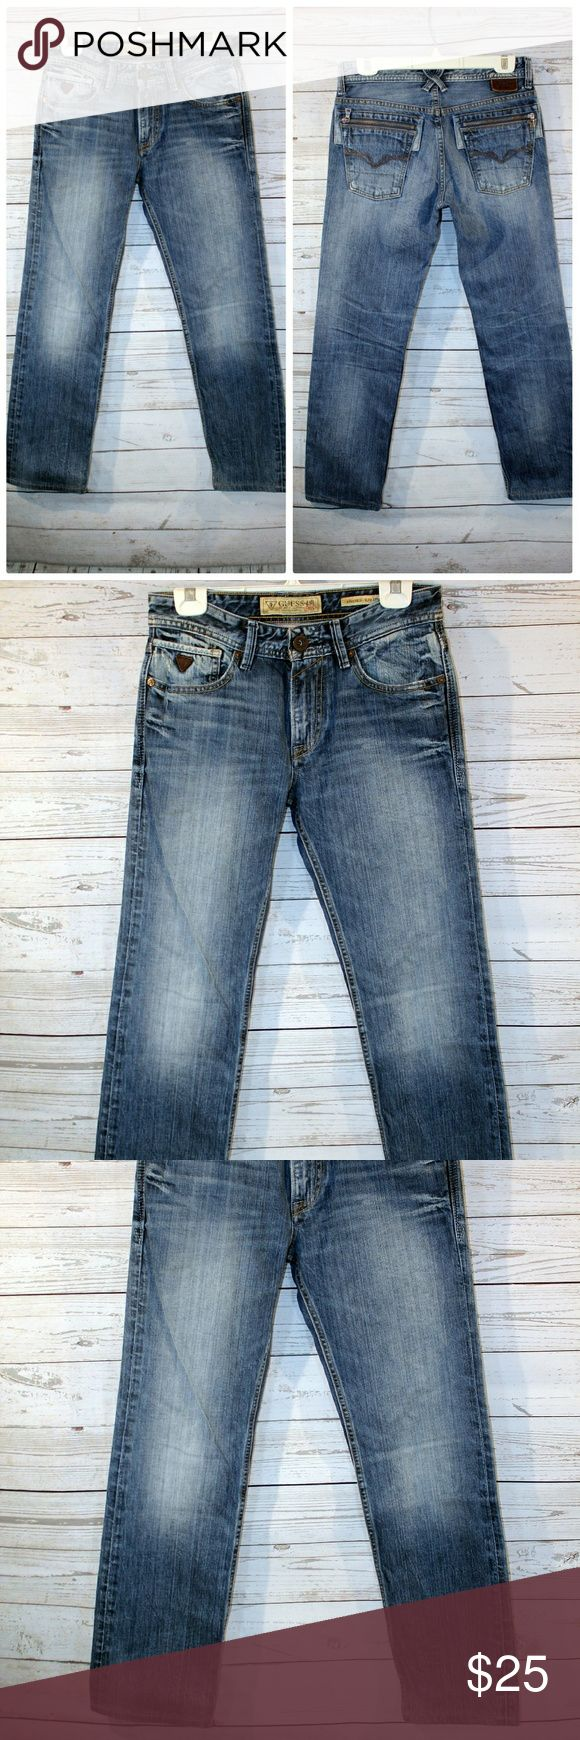 """Guess Jeans Mens Size 29x28 Guess Jeans Mens Size 29x28 Lincoln Slim Straight Distressed Blue Denim   All measurements are approximate and taken unstretched and laying flat.   Waist: 30"""" Length: 37.5"""" Inseam: 28"""" Rise: 9""""  GUC-  light stain on the upper leg, length has been altered to 28"""" inseam, please see photos. Guess Jeans Slim Straight"""